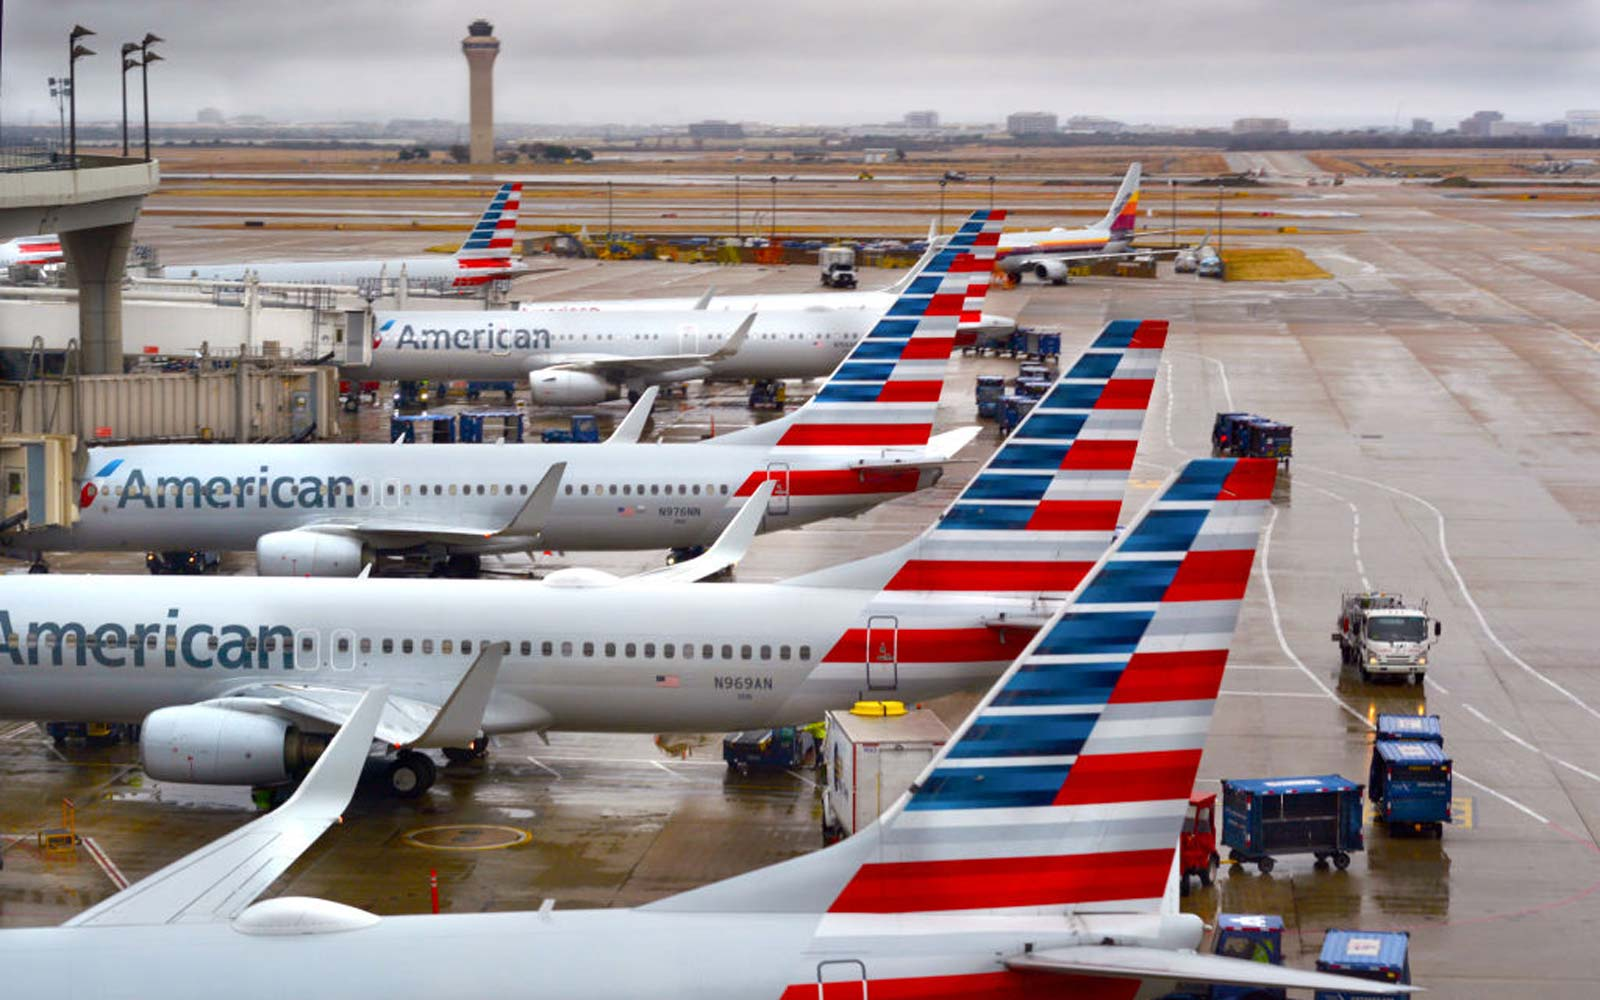 American Airlines passenger jets parked at their gates on a rainy morning at Dallas/Fort Worth International Airport